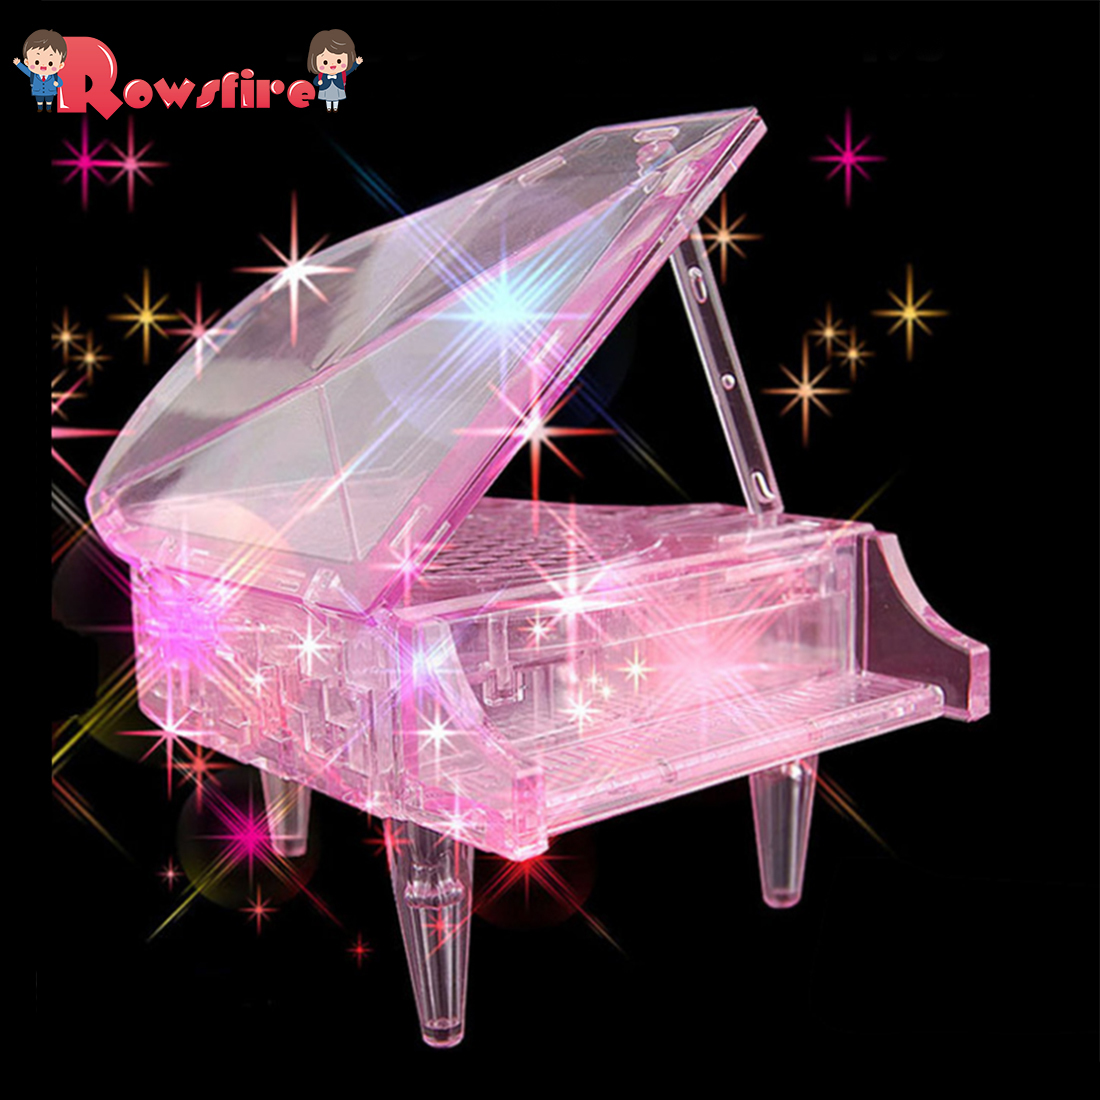 Rowsfire 3D Crystal Piano Puzzle Jigsaw Creative Gift With Pink Glitter For Children Braining Playing Kits